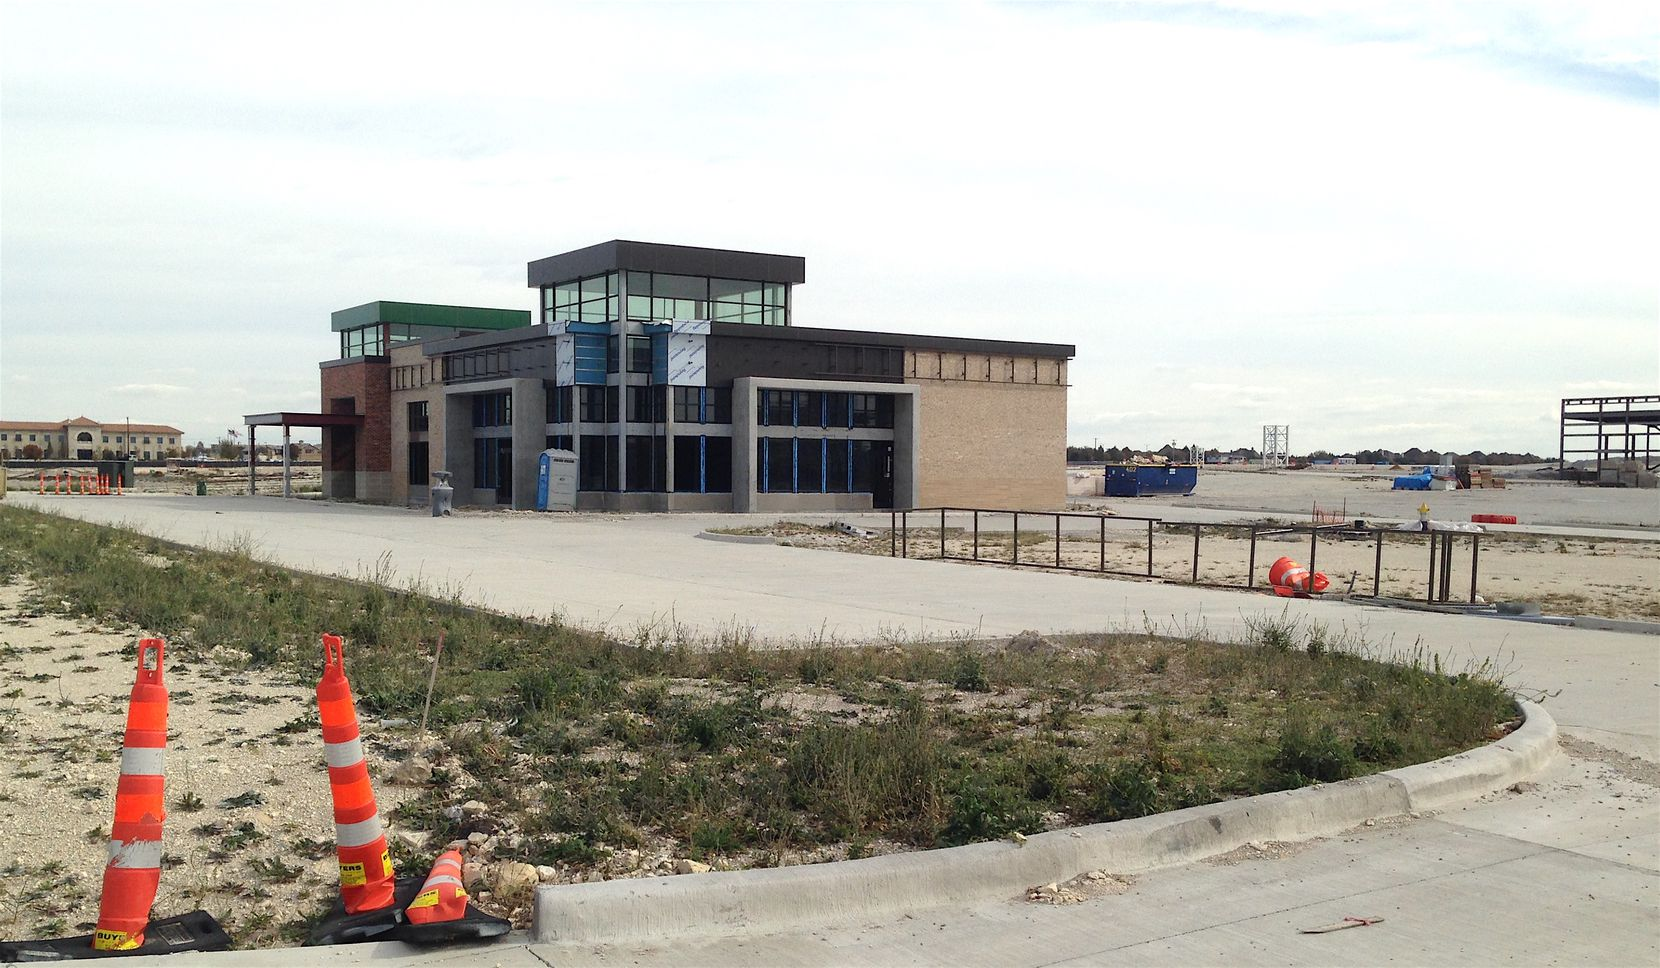 This retail building sits unfinished at the Wade Park project.